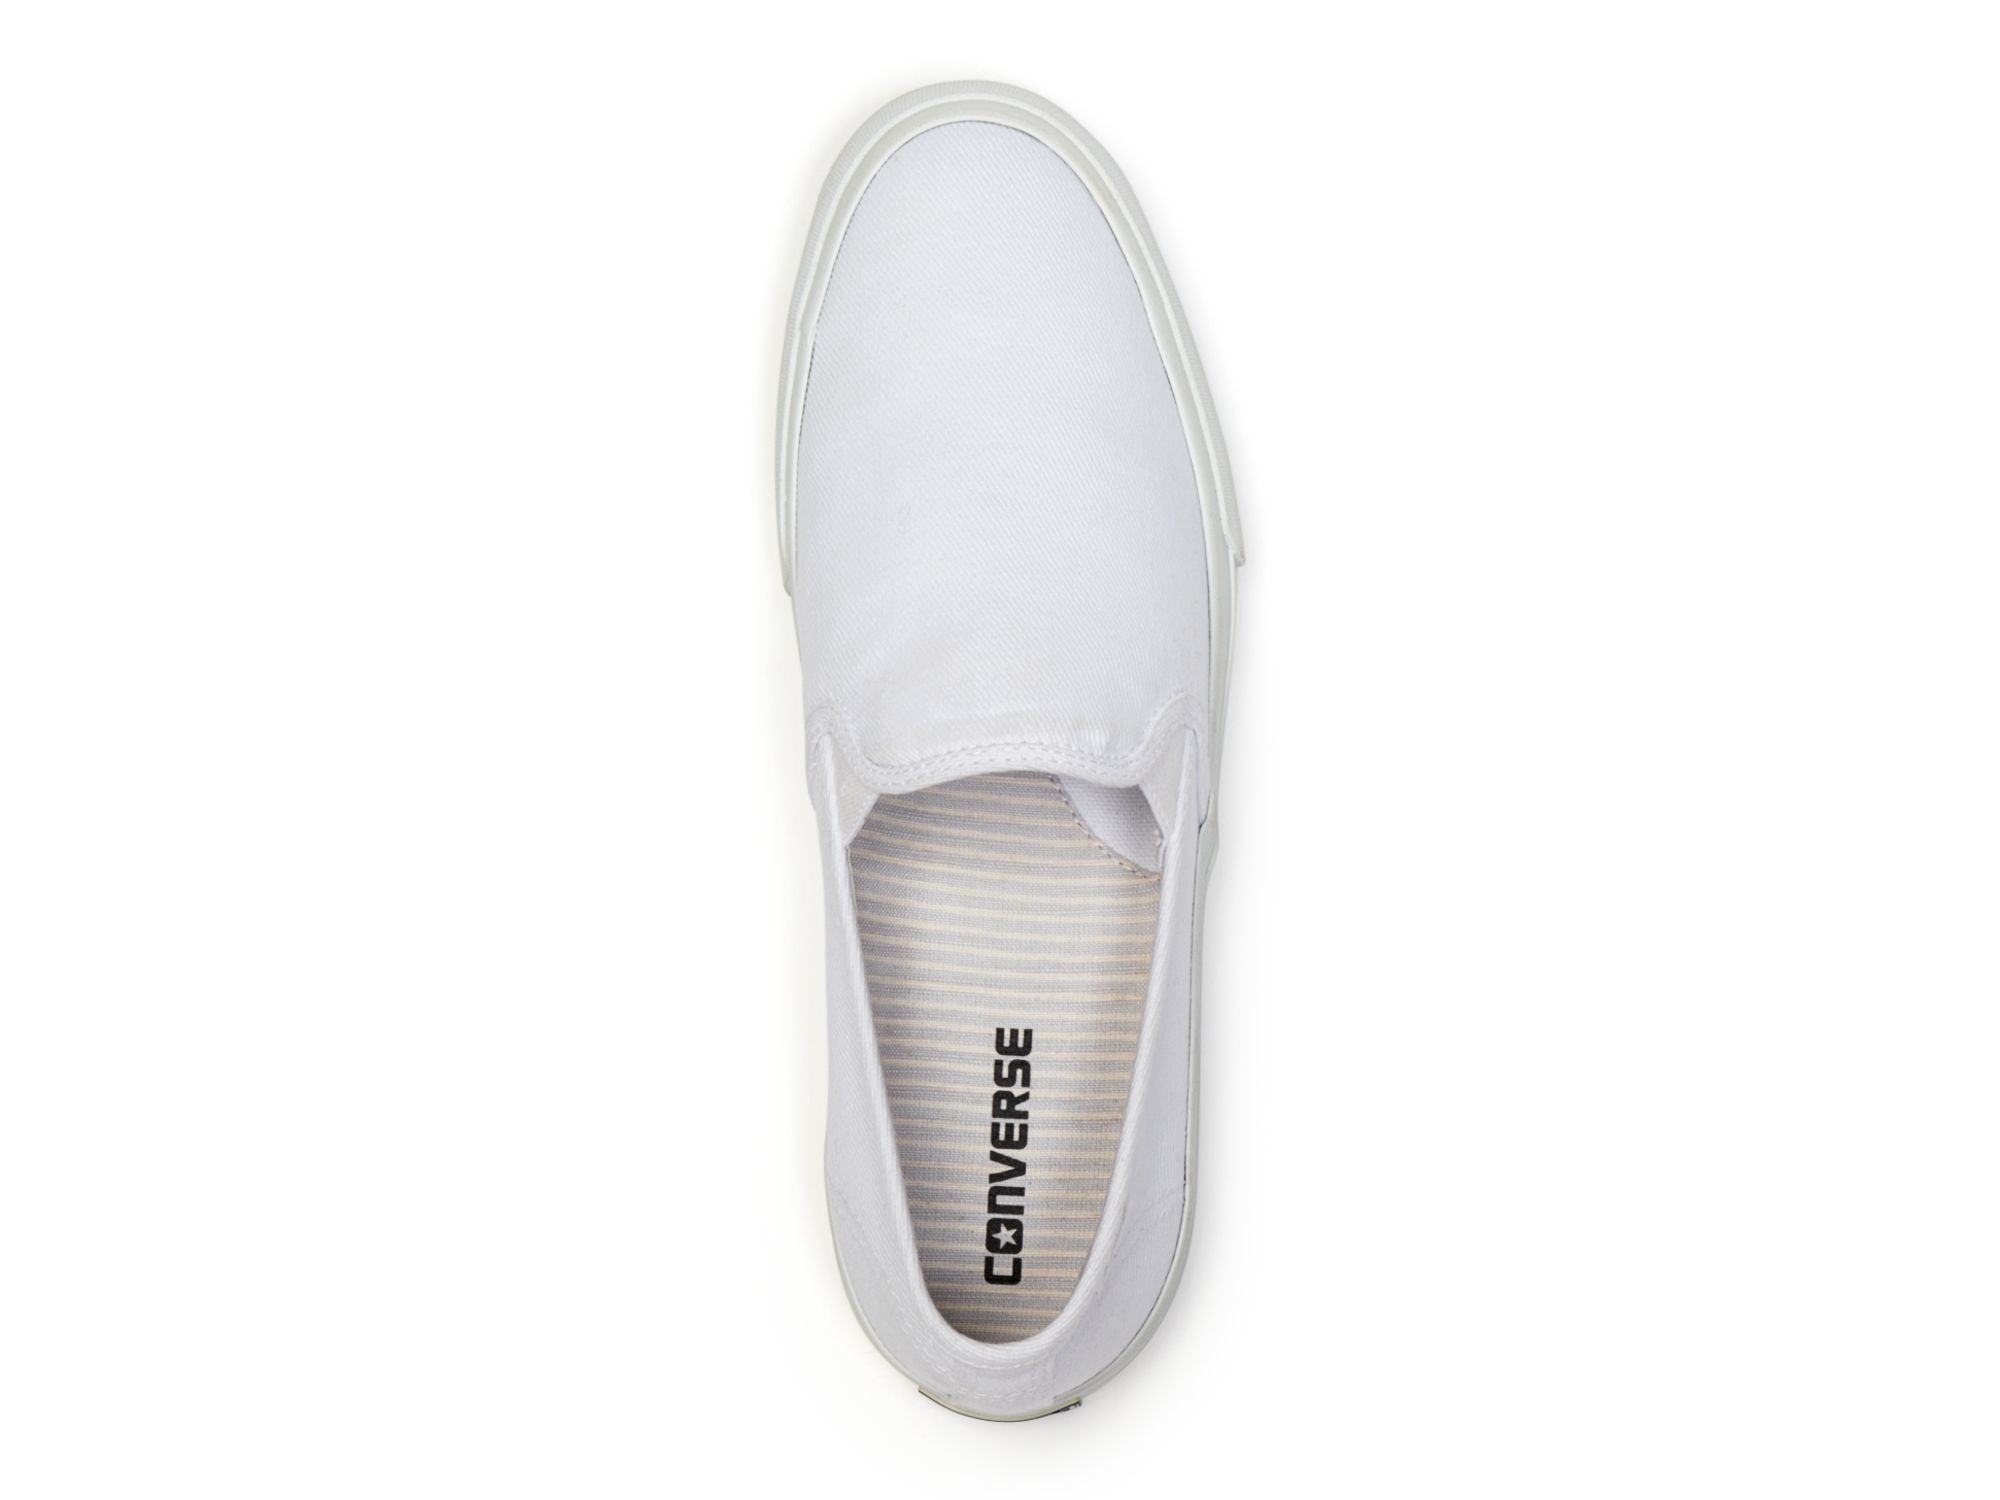 Converse Jack Purcell Slip On Sneakers